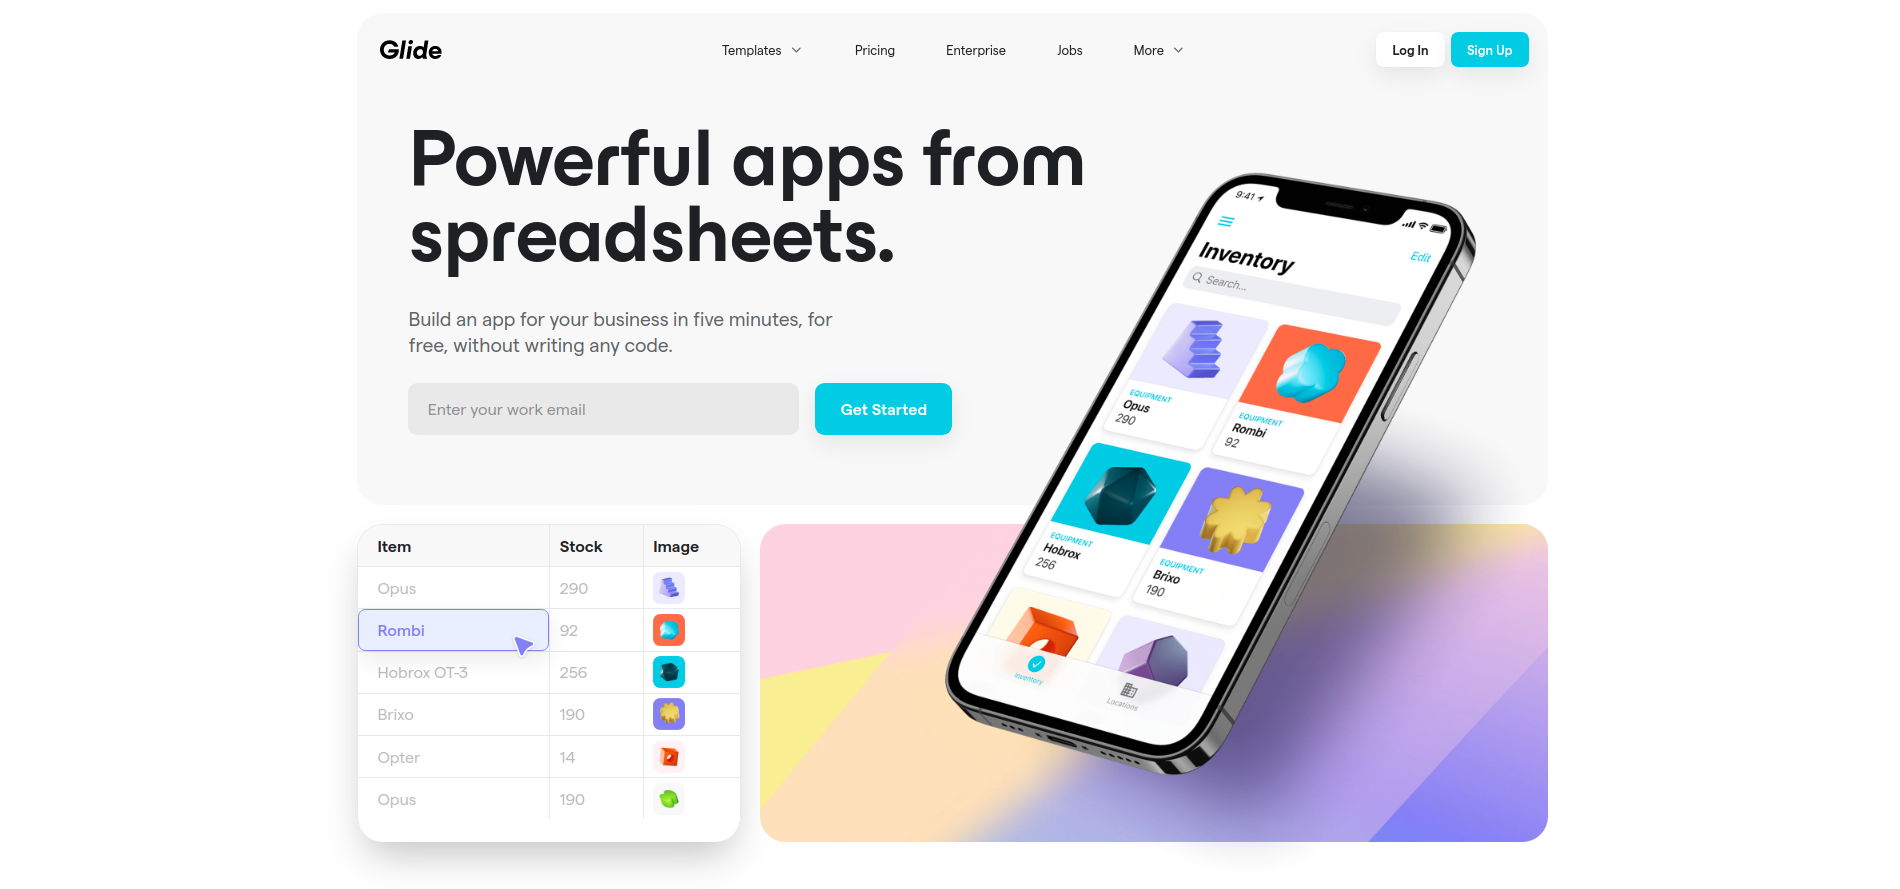 Glide turns spreadsheets into powerful apps for work, without writing any code. Pick a spreadsheet or start with a template, customize your app, then share it instantly with anyone